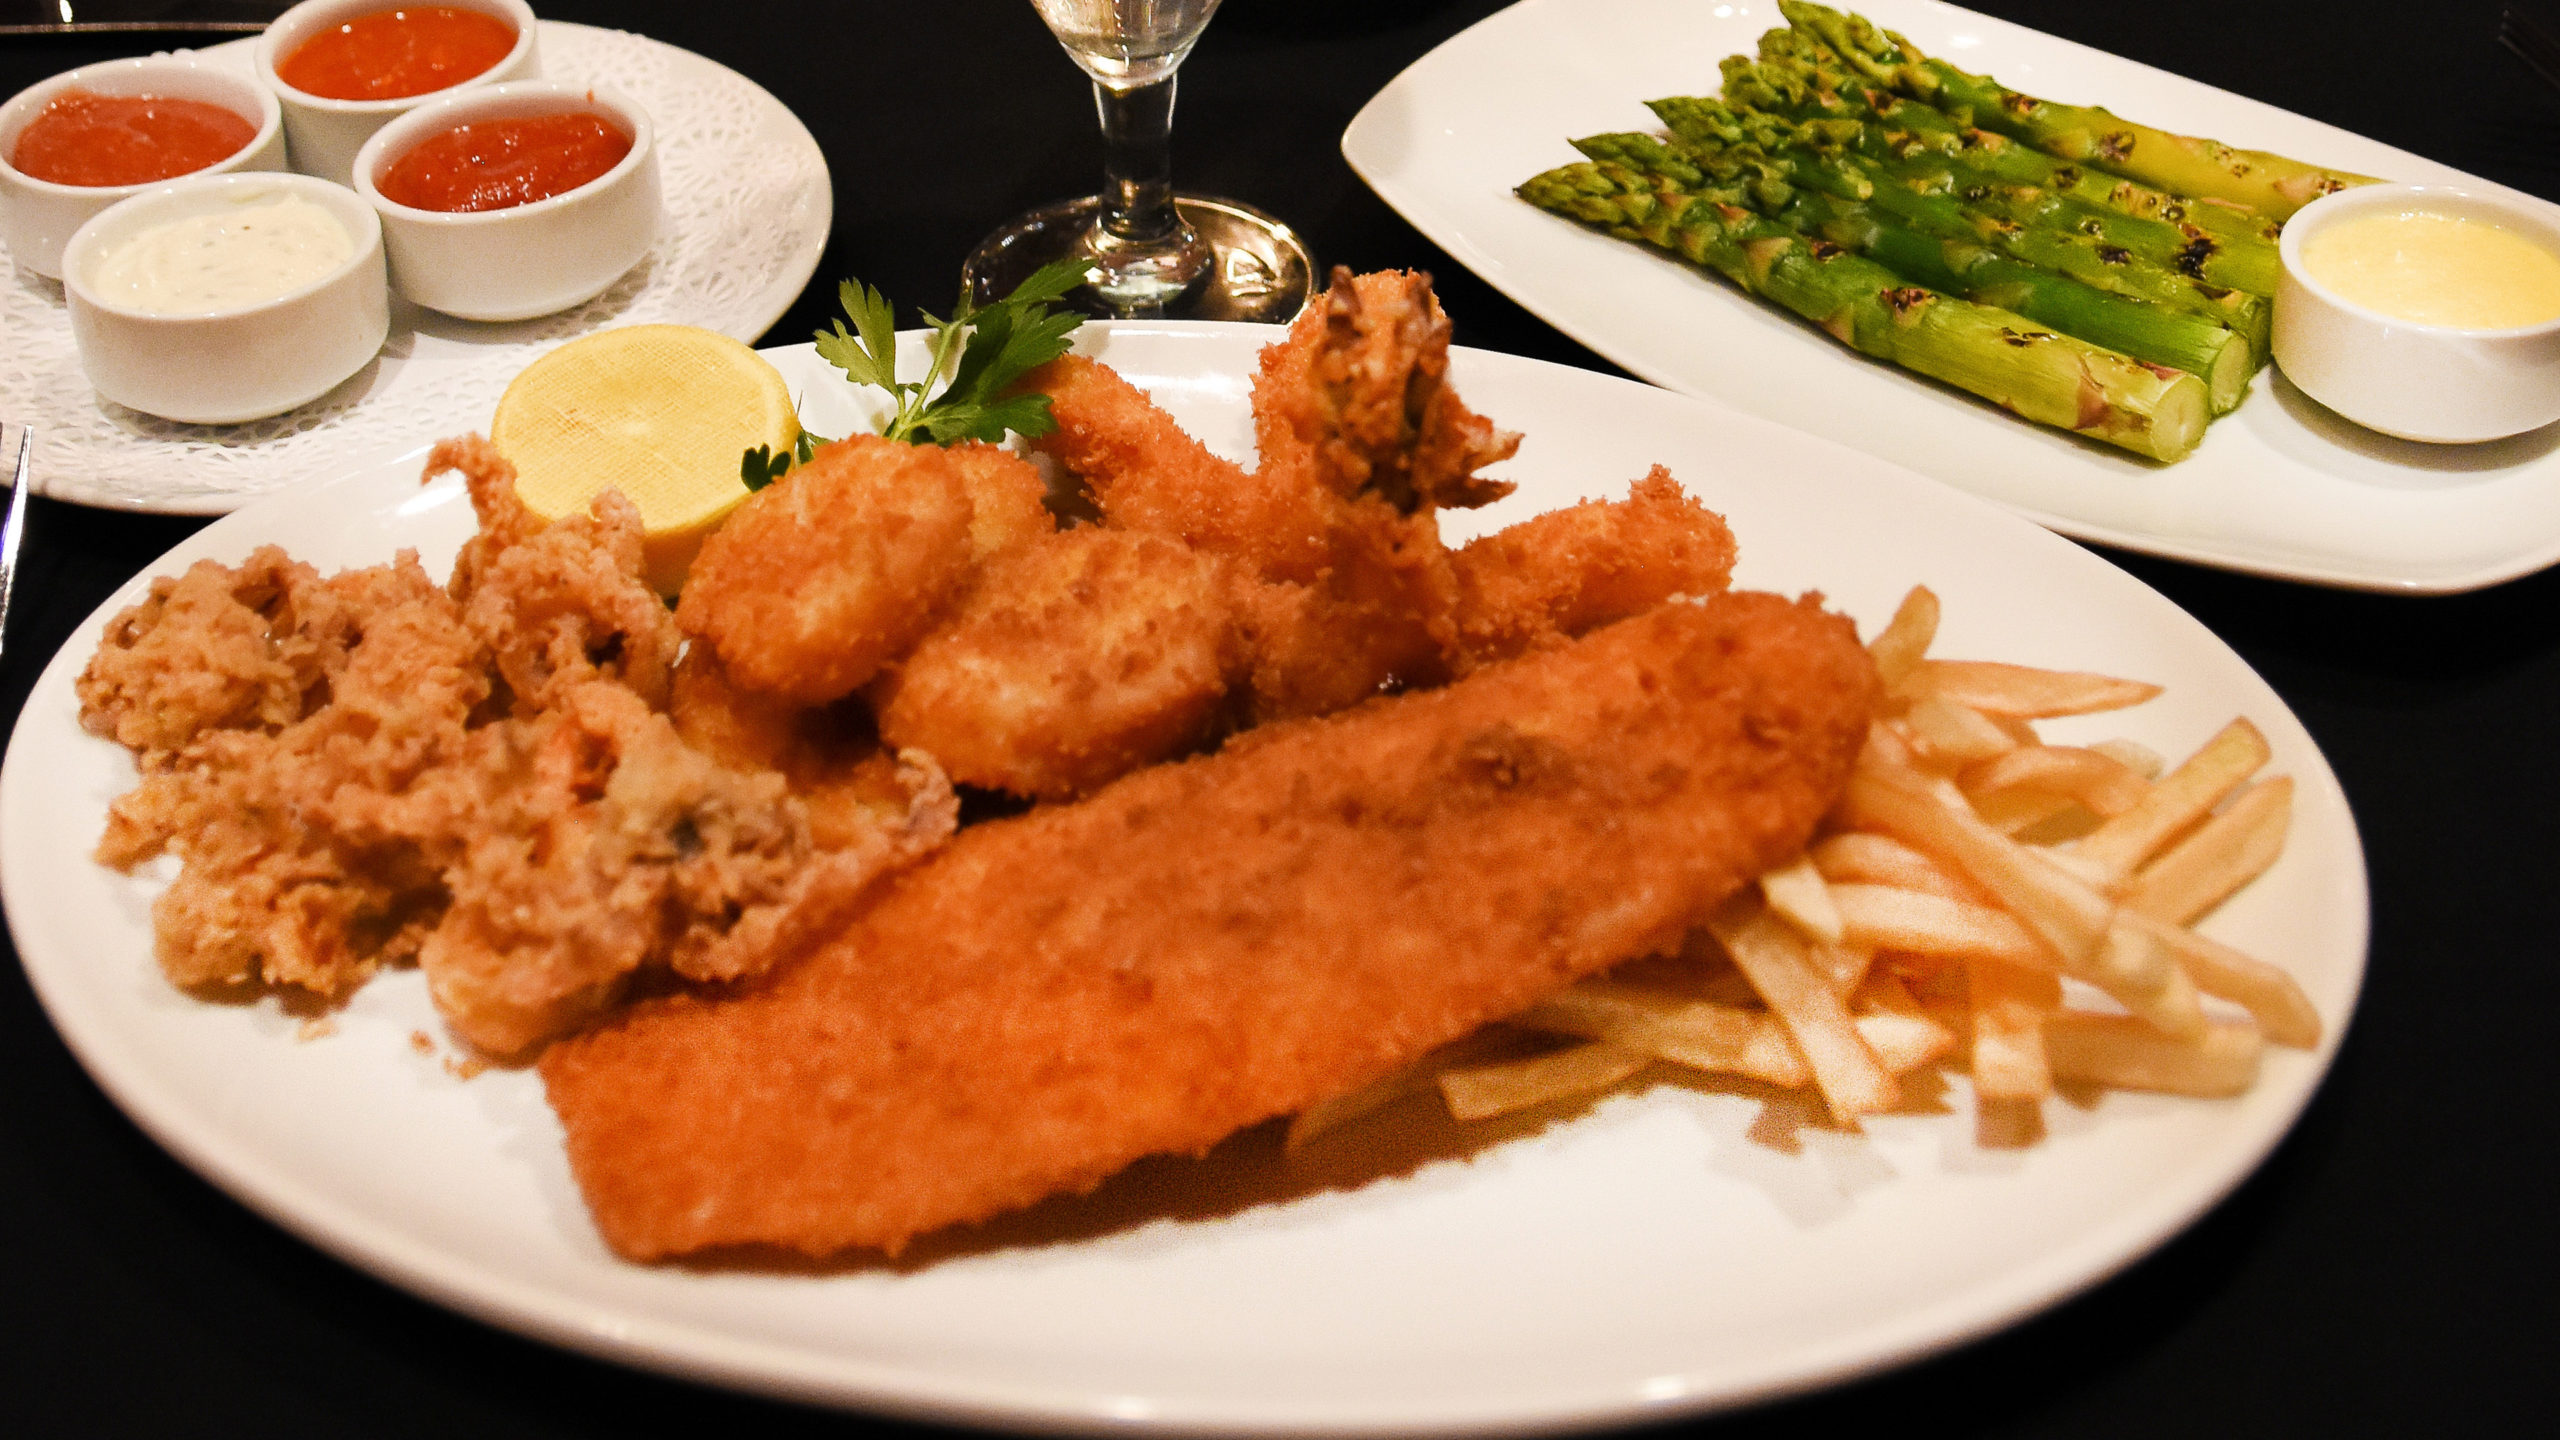 plate of fried fish, shrimp and calamari with a side dish of asparagus